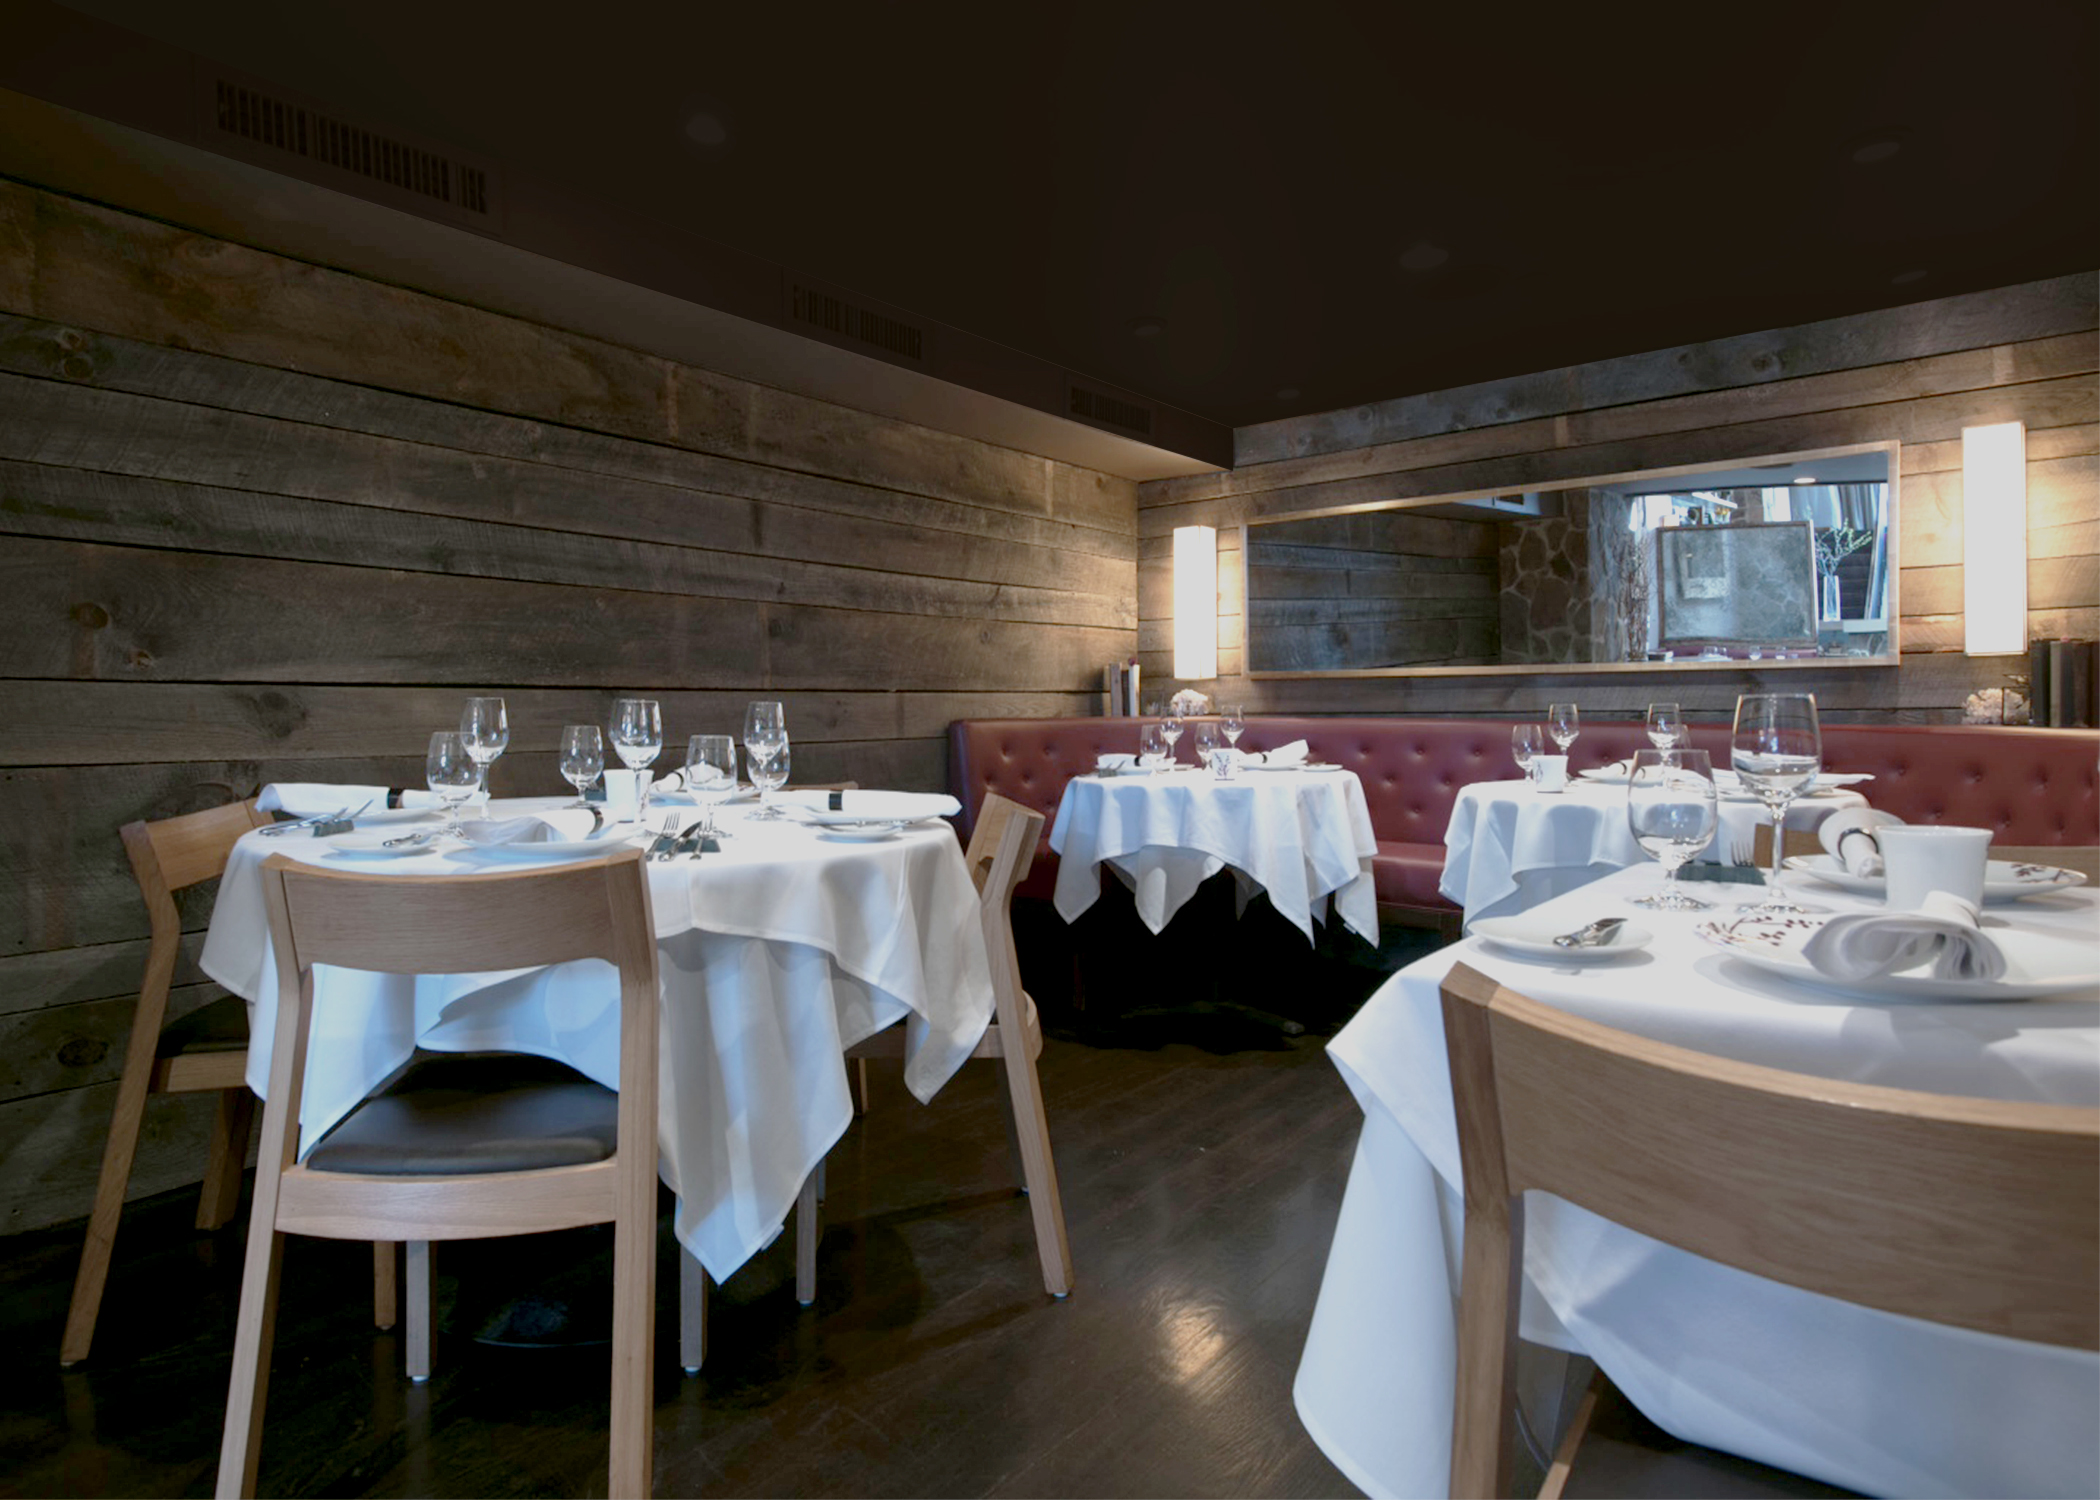 Downstairs Dining was Deliberately Dark and Cave-like, Creating an Intimate, Cosy Experience